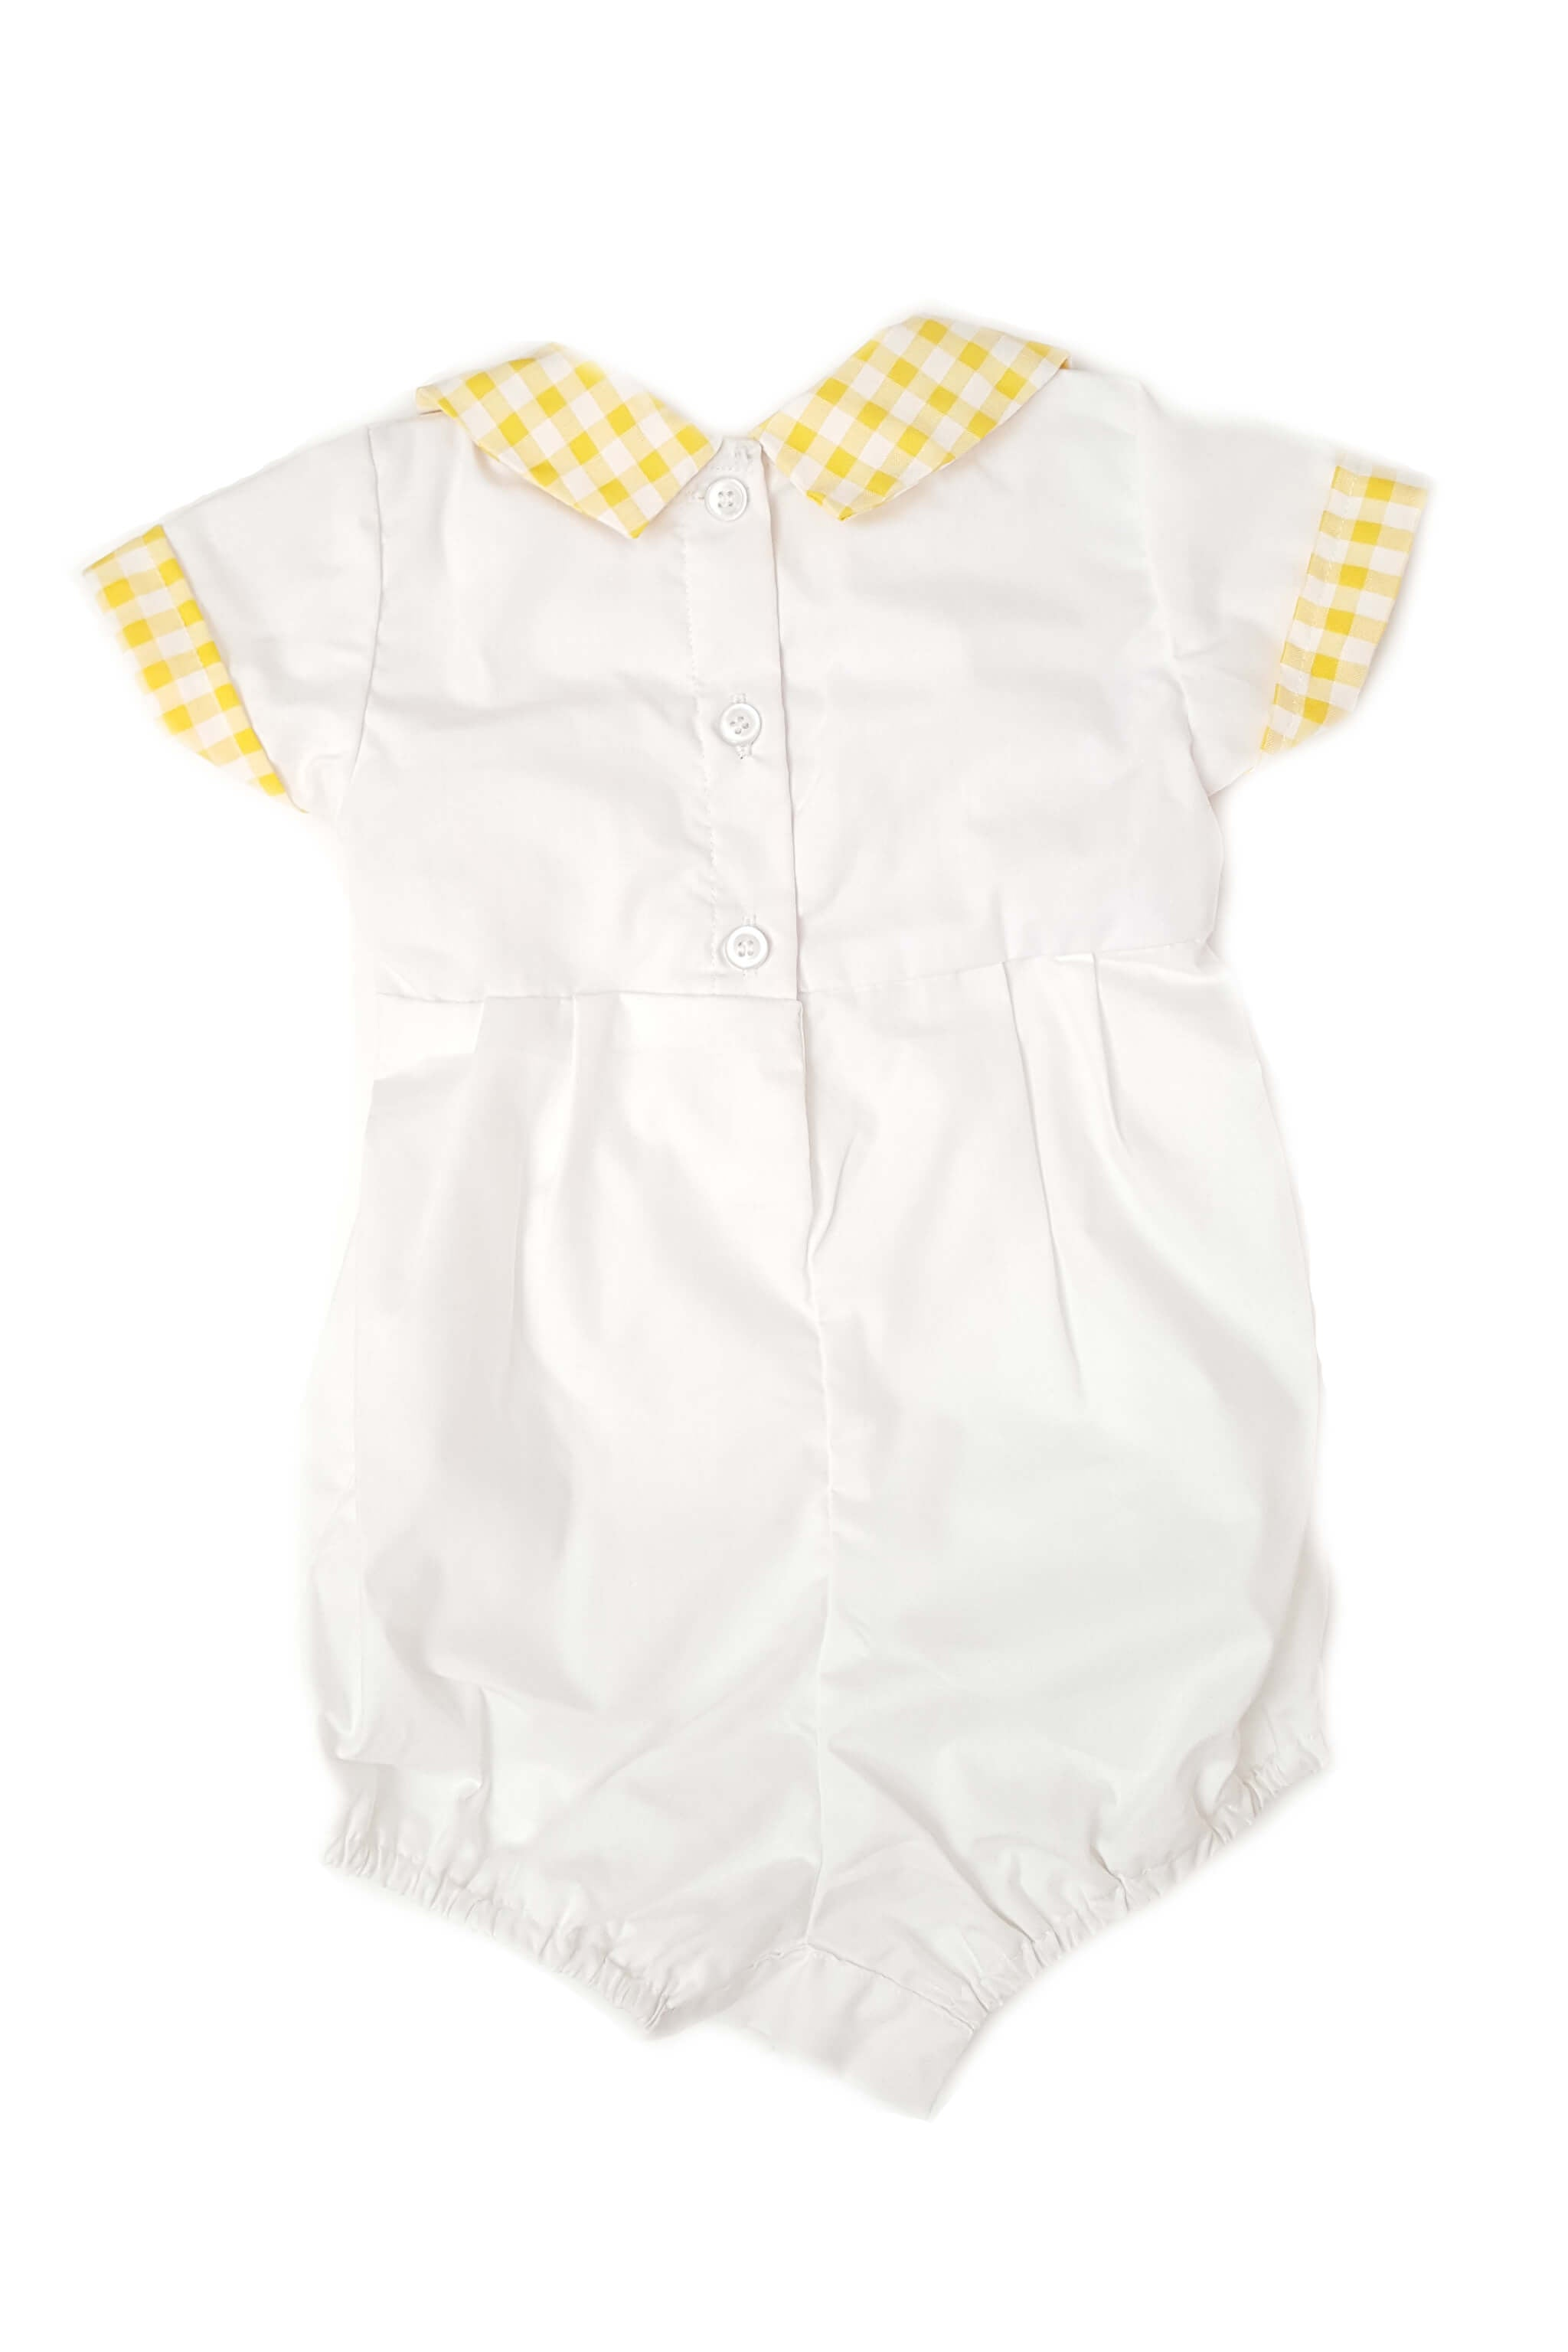 Back of baby boy's white romper with shirt collar in contrasting yellow and delicate hand-smocked bodice and button back opening